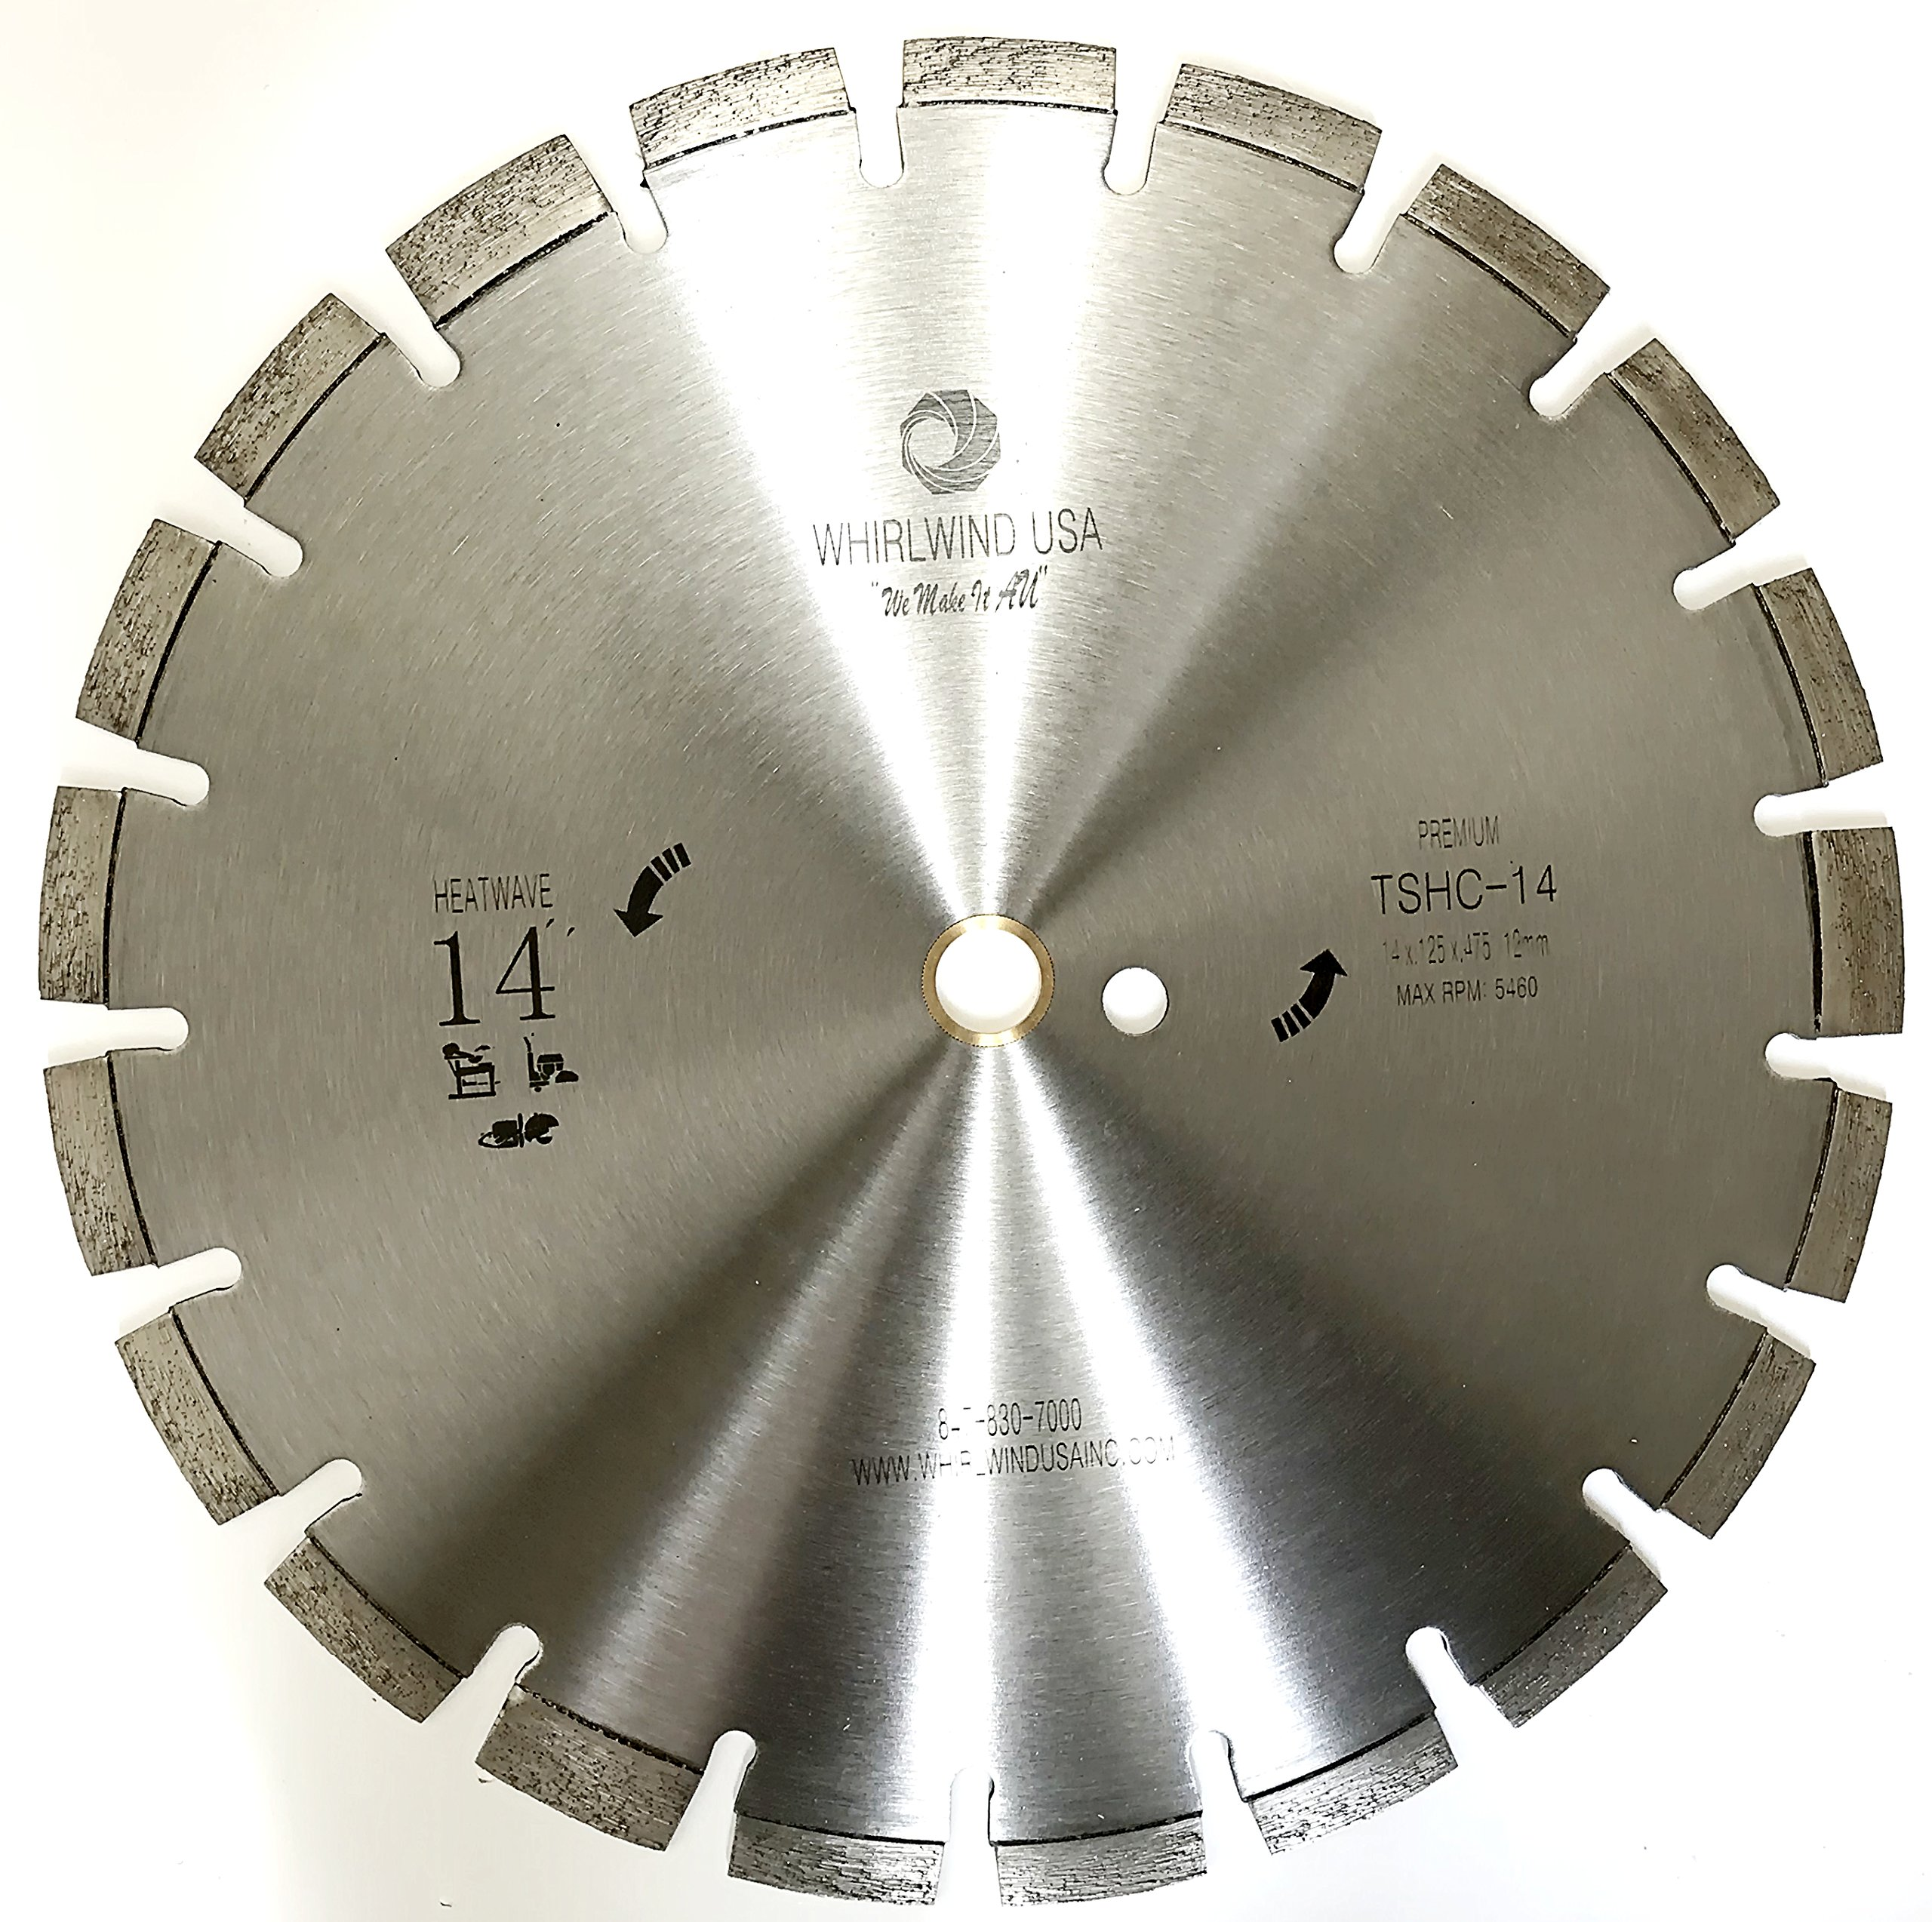 Whirlwind USA 14 inch Heatwave Dry Concrete Cutting Laser Welded Segmented Diamond Saw Blades (14'') by WHIRLWIND USA